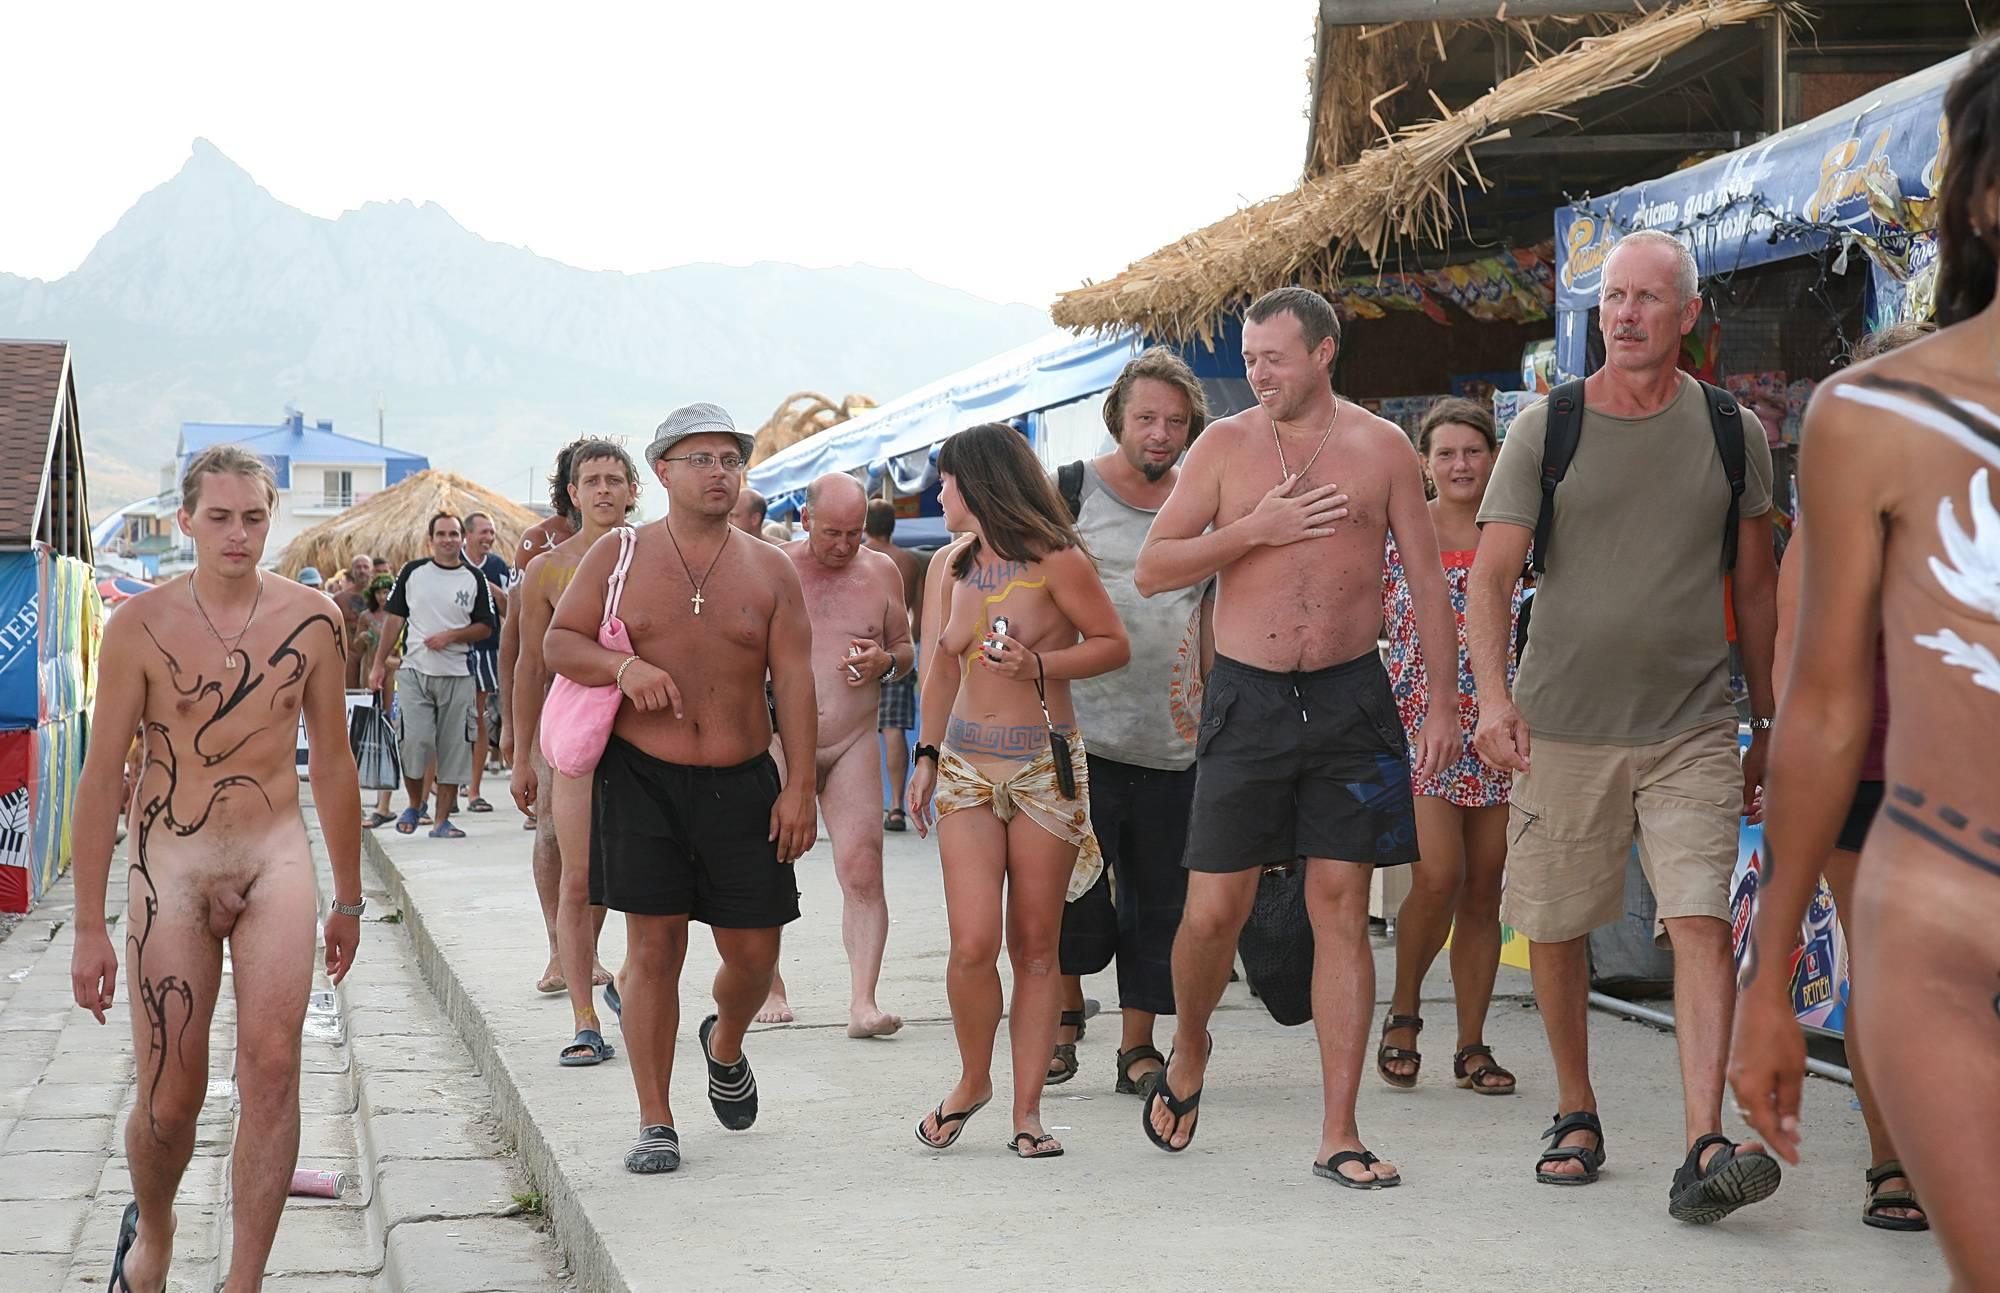 Nudist Gallery Marching Down The Street - 1